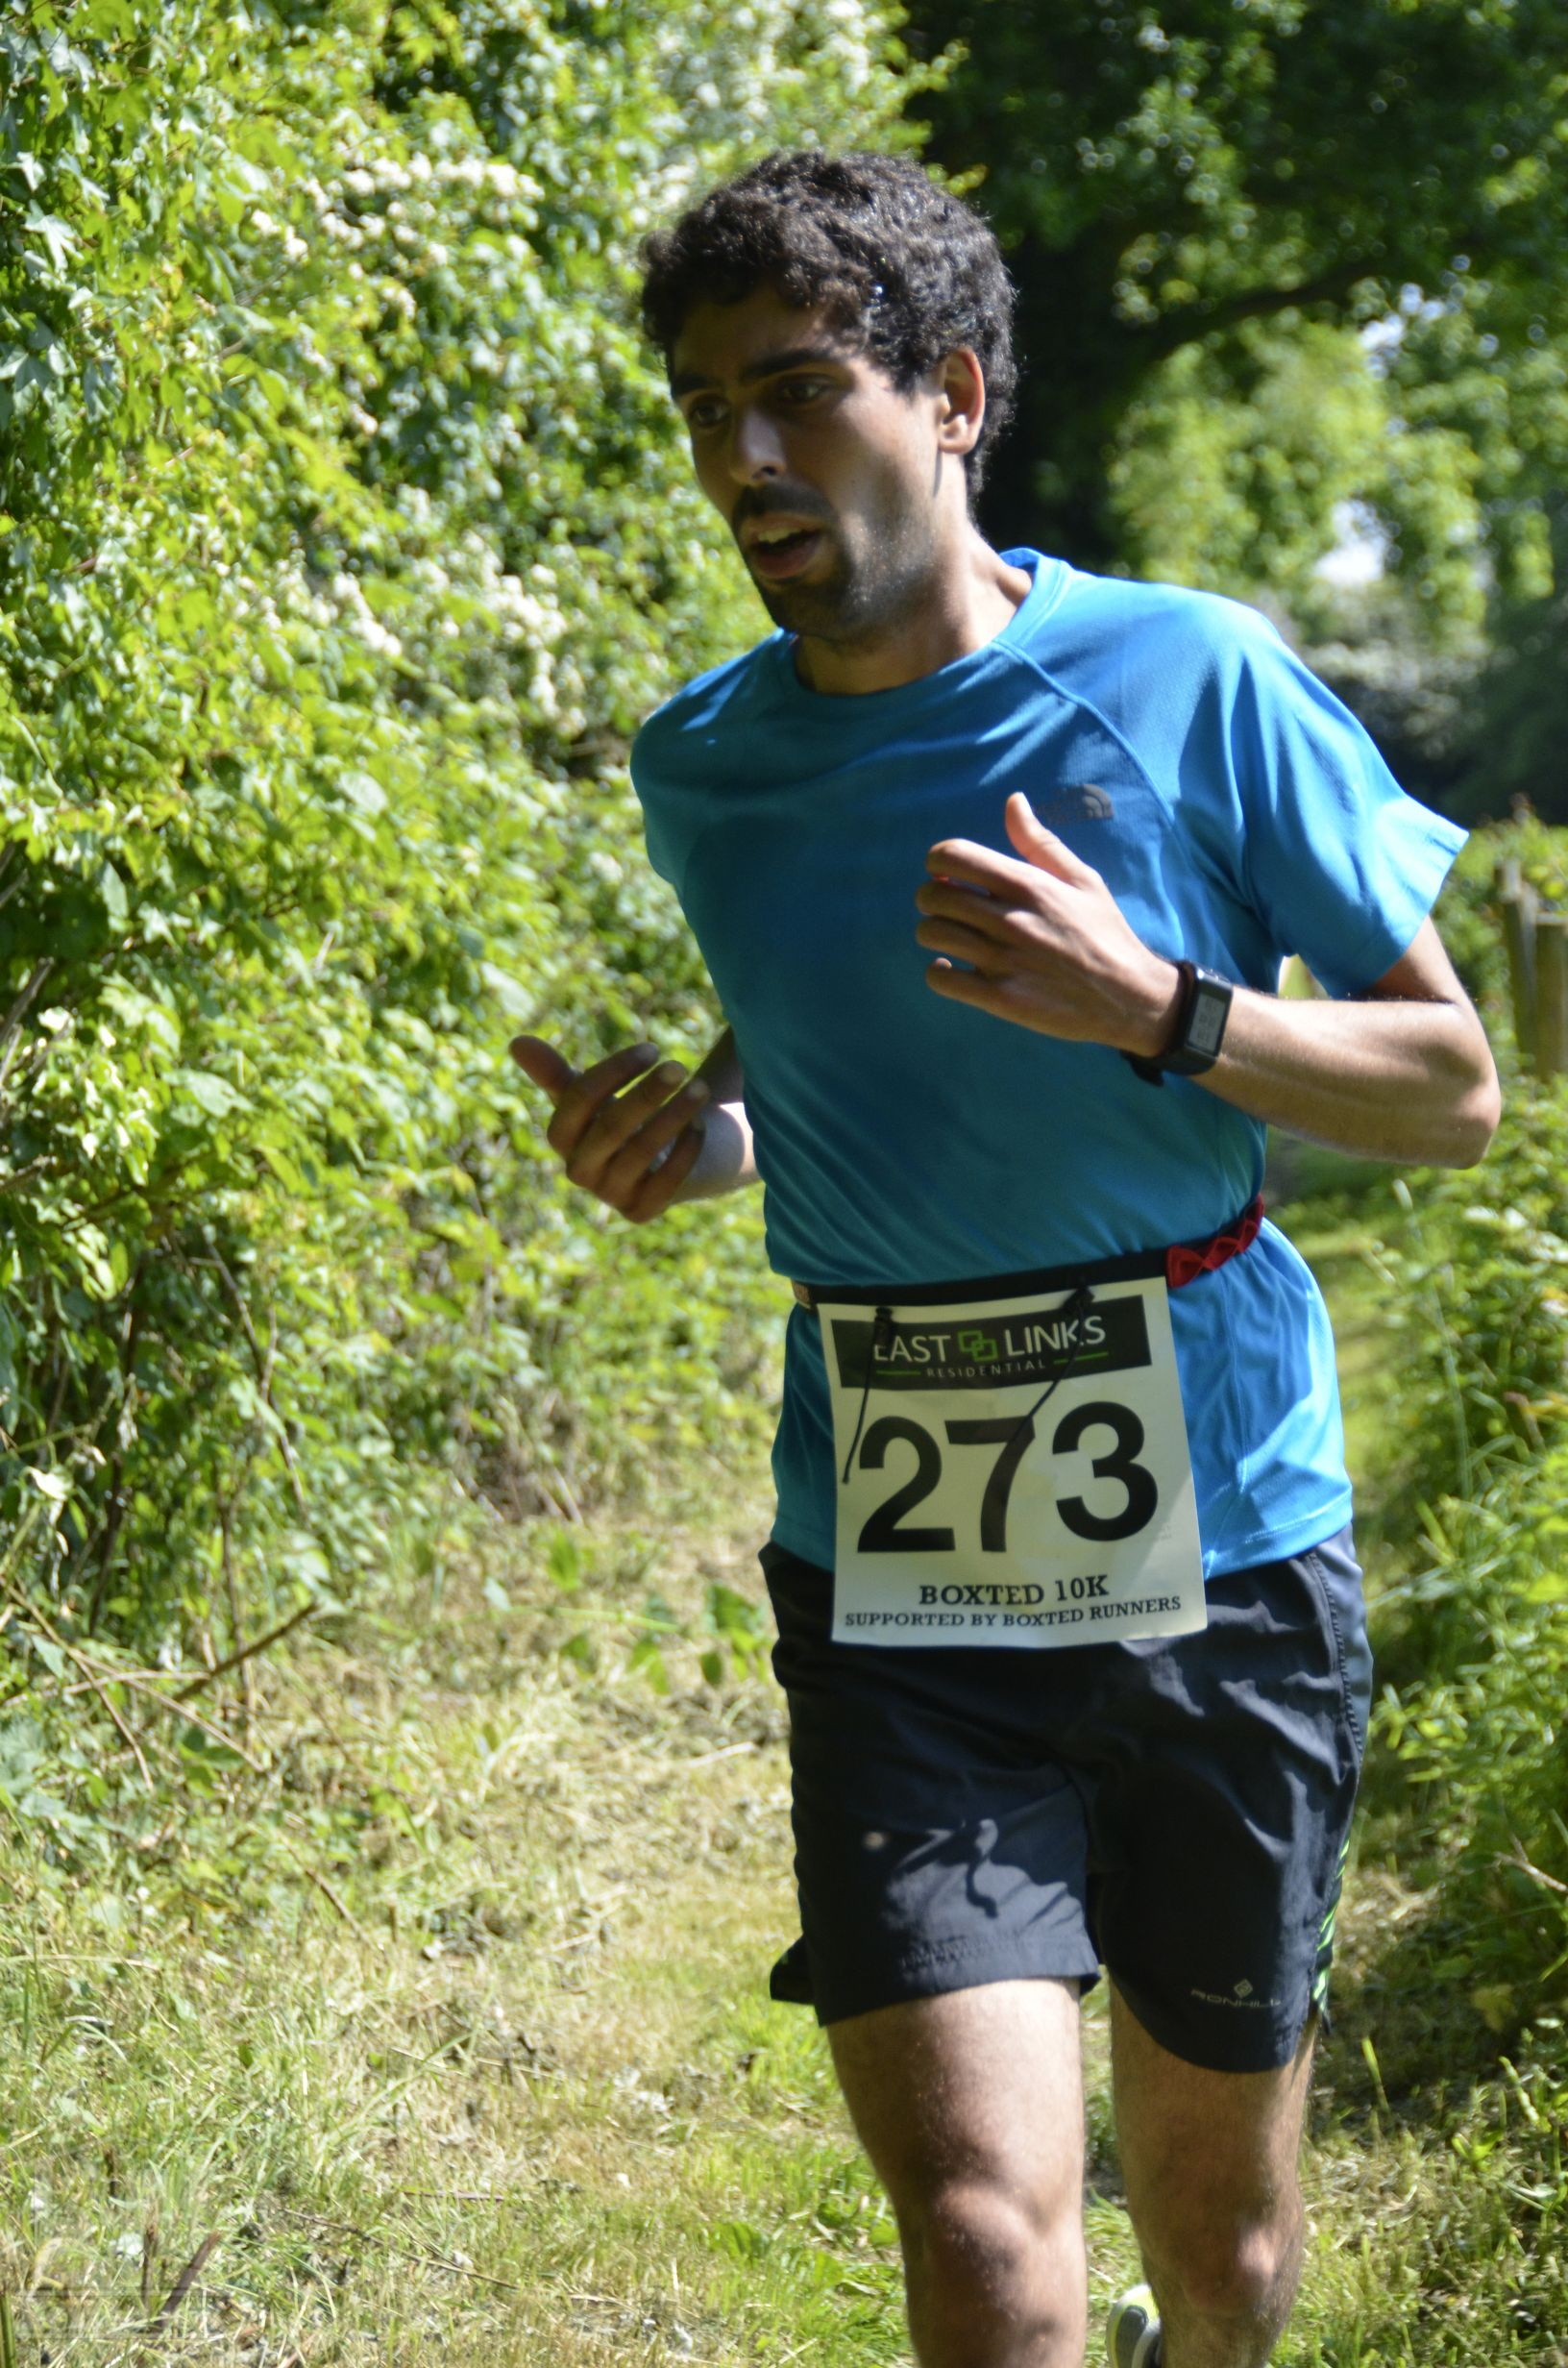 Boxted10k-00127